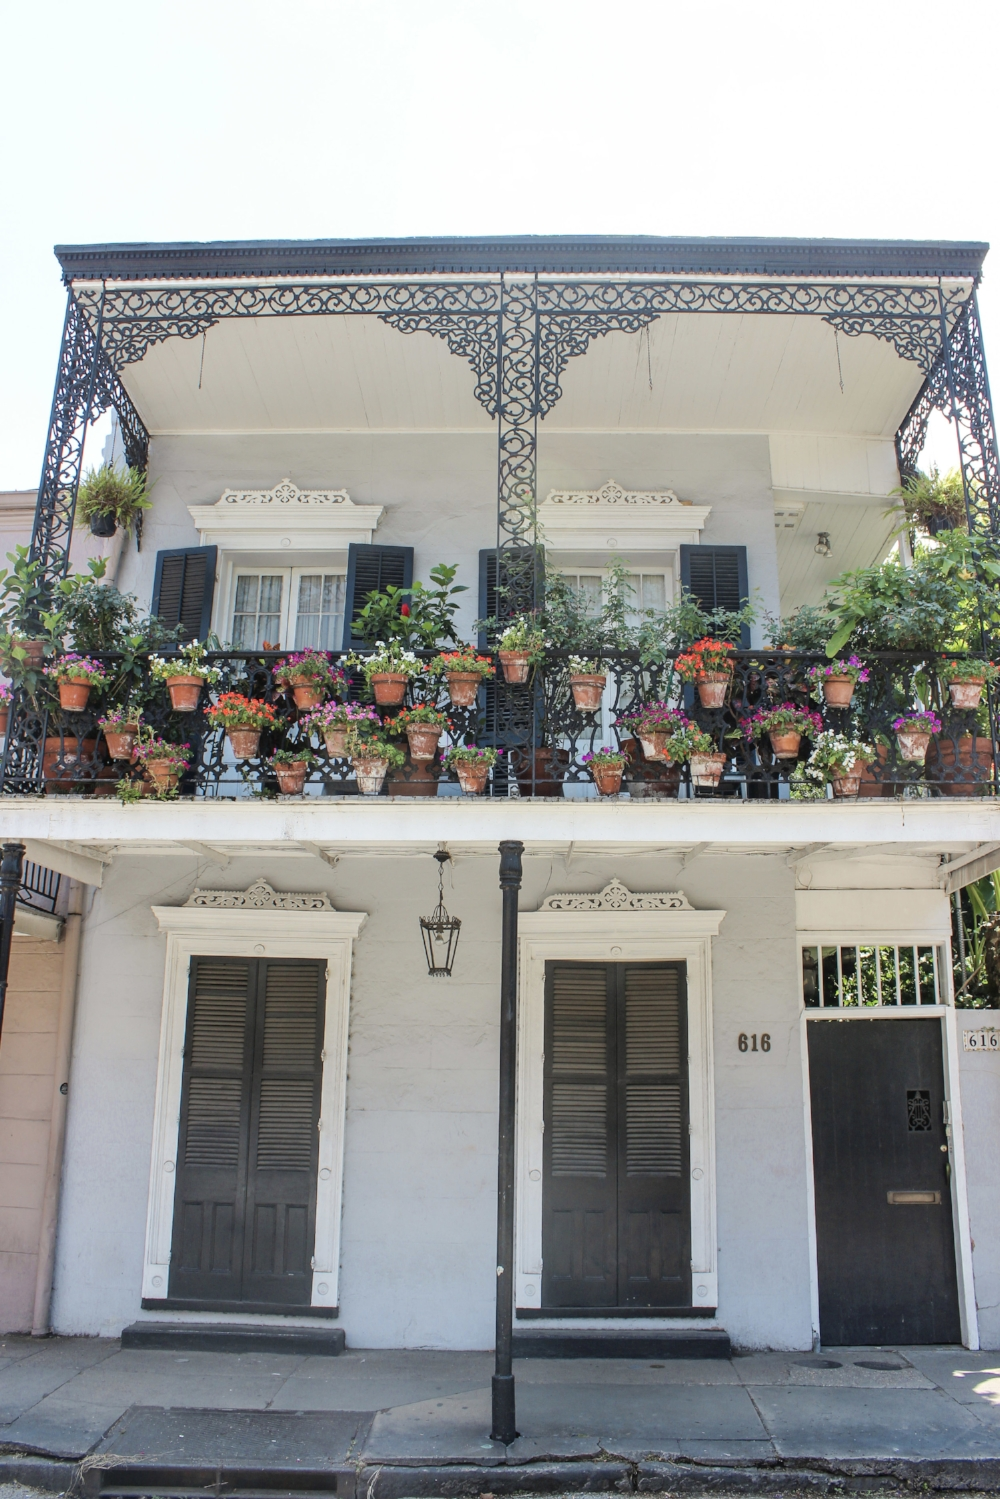 curio.trips.usa.new.orleans.white.house.balcony.jpg